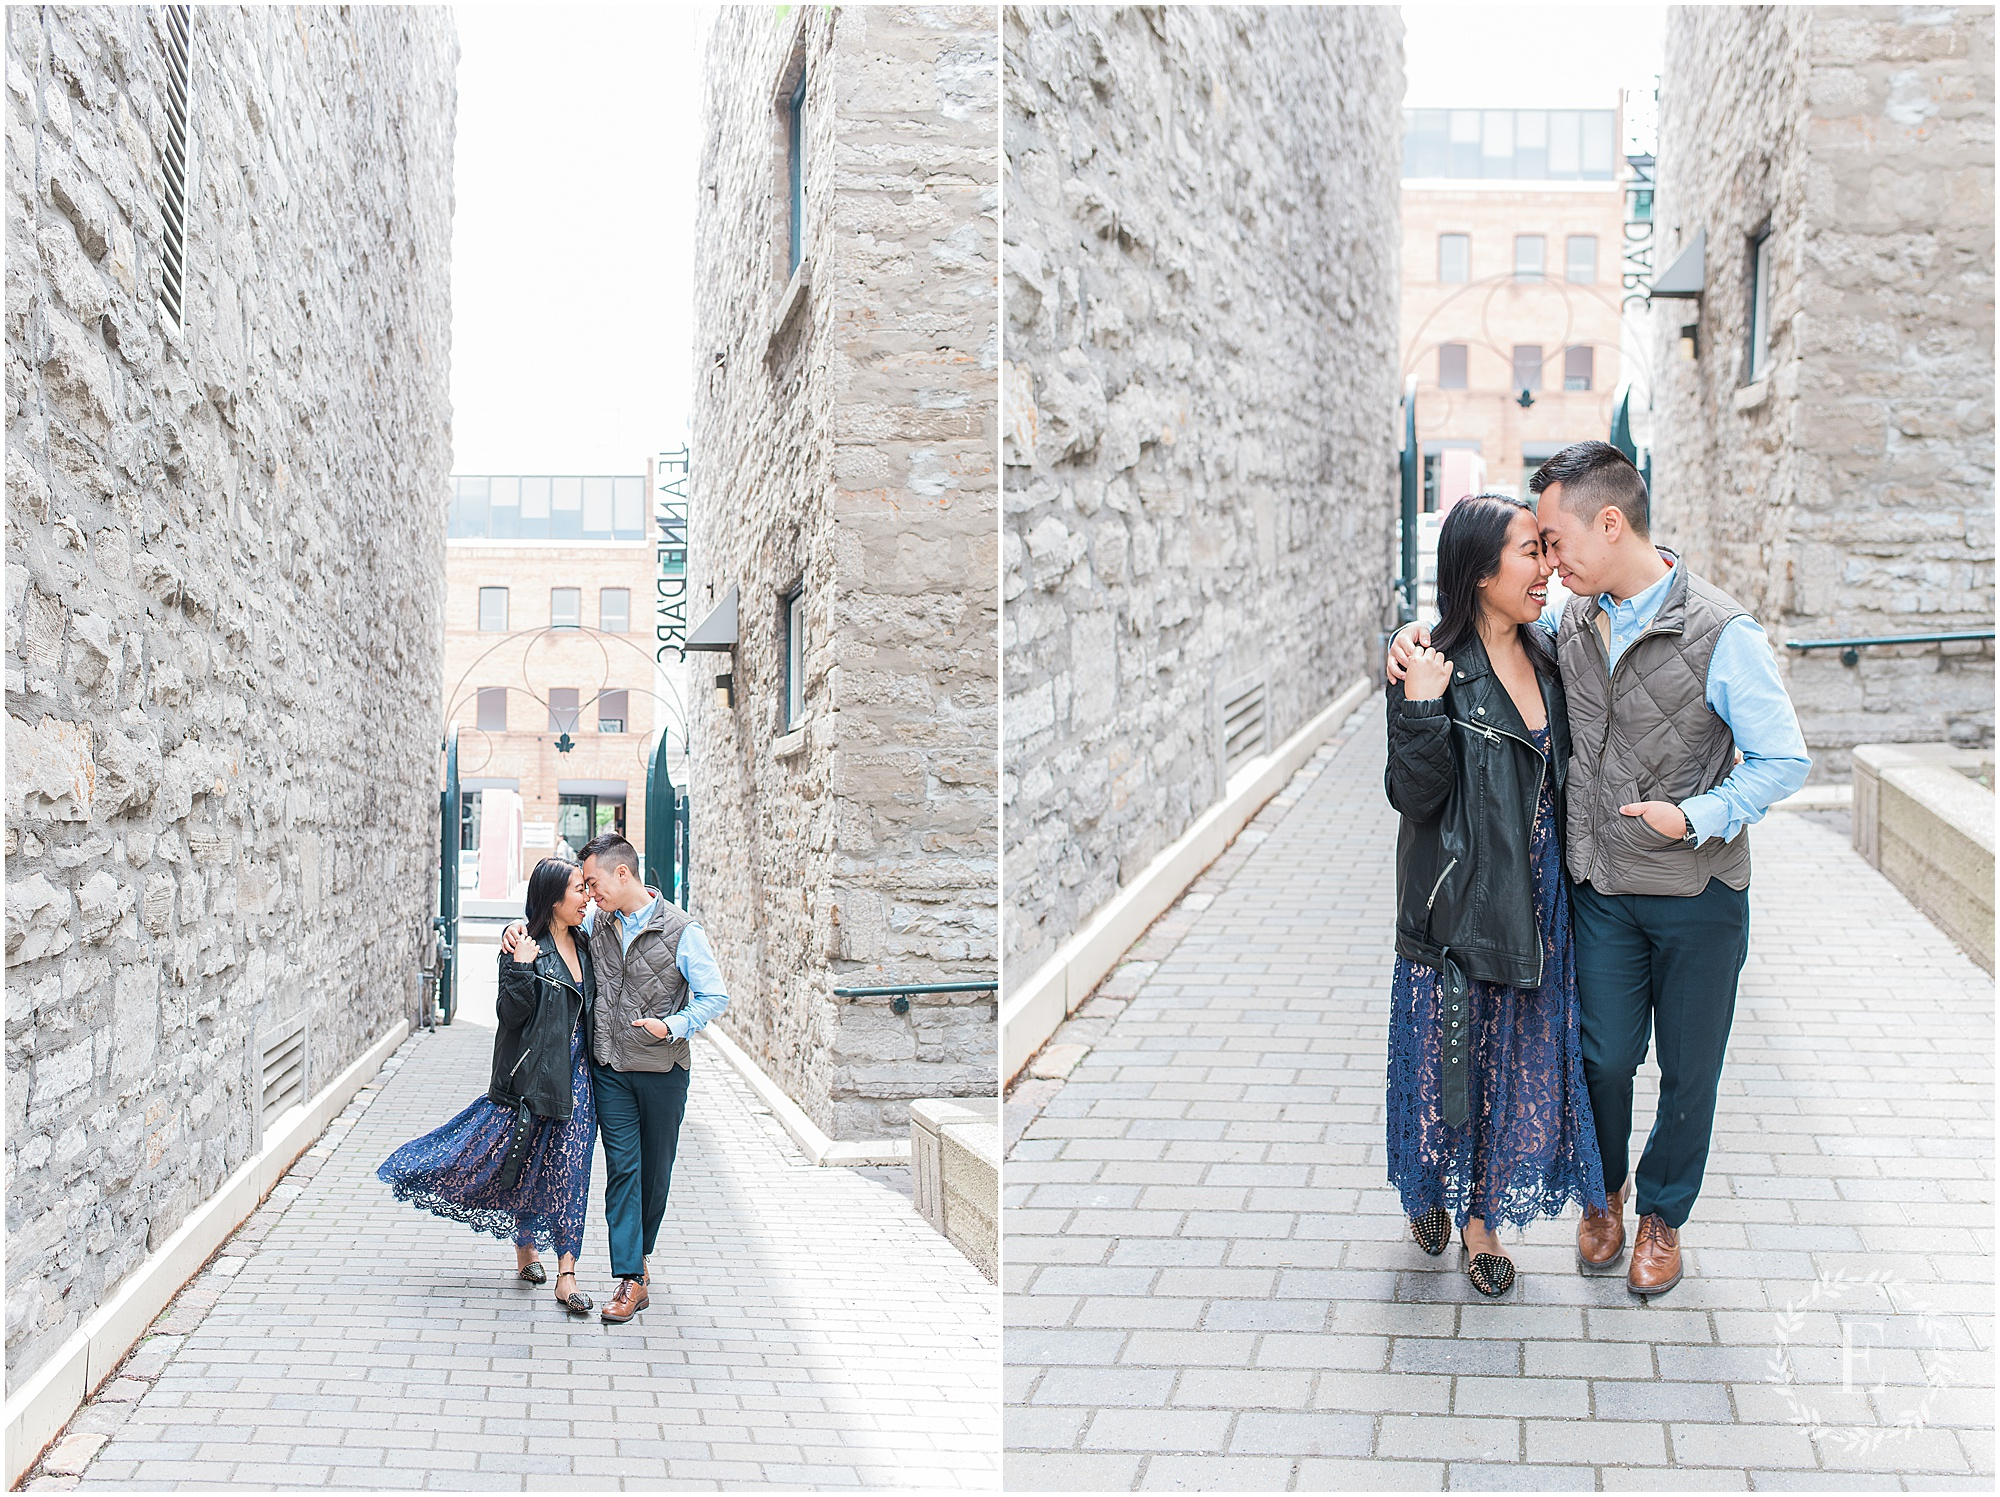 0144 Chris Ann and Patrick Engagement Downtown Ottawa- Photography by Emma.jpg